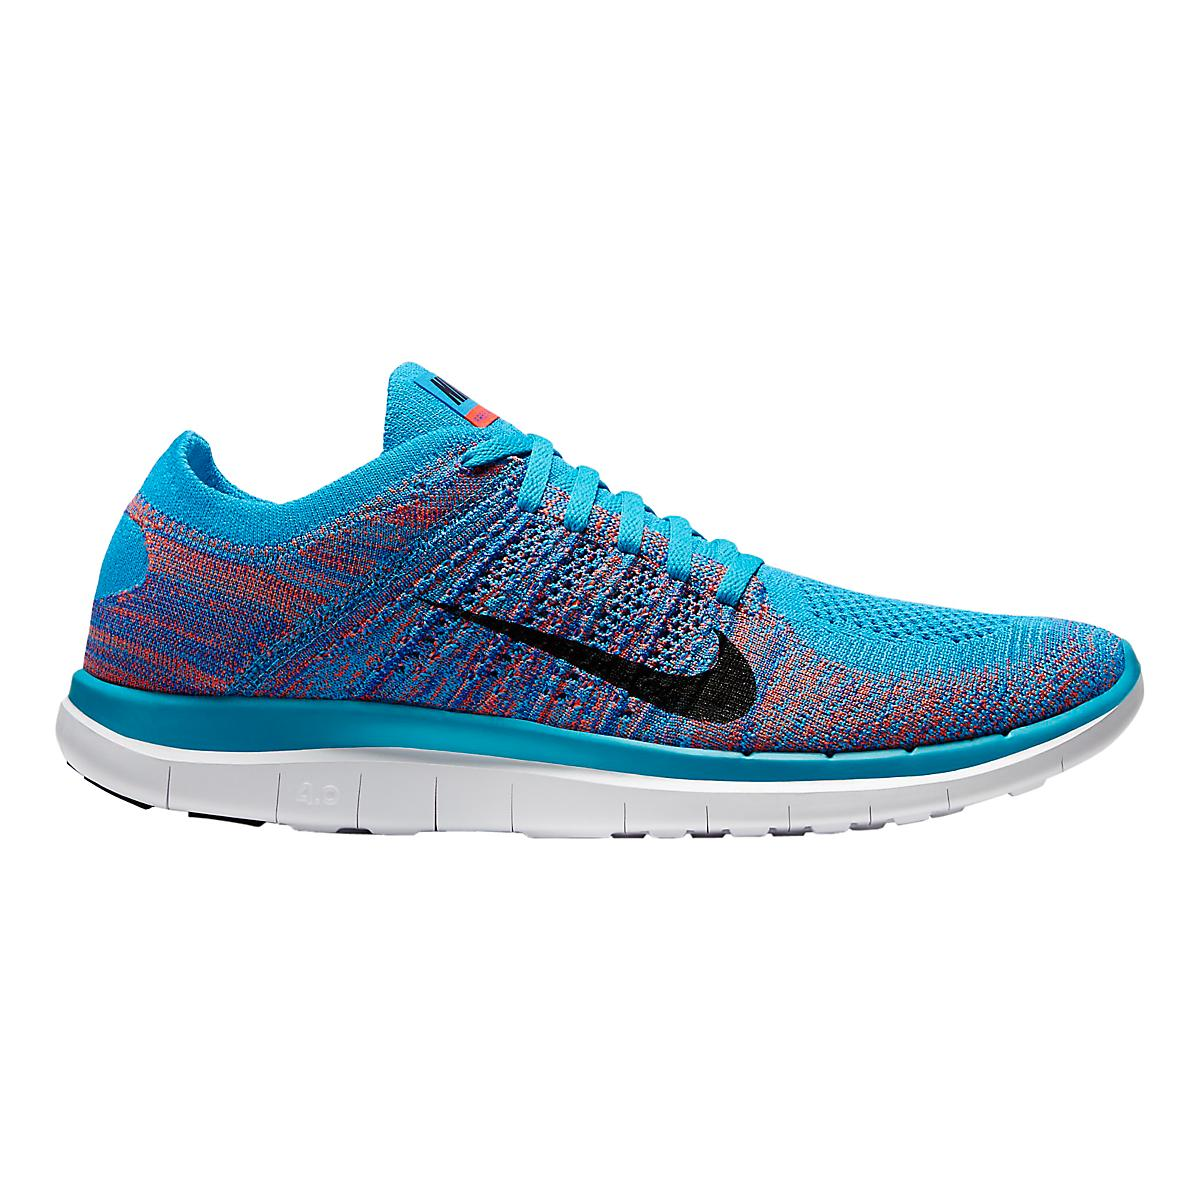 12046909cfea68 Mens Nike Free 4.0 Flyknit Running Shoe at Road Runner Sports